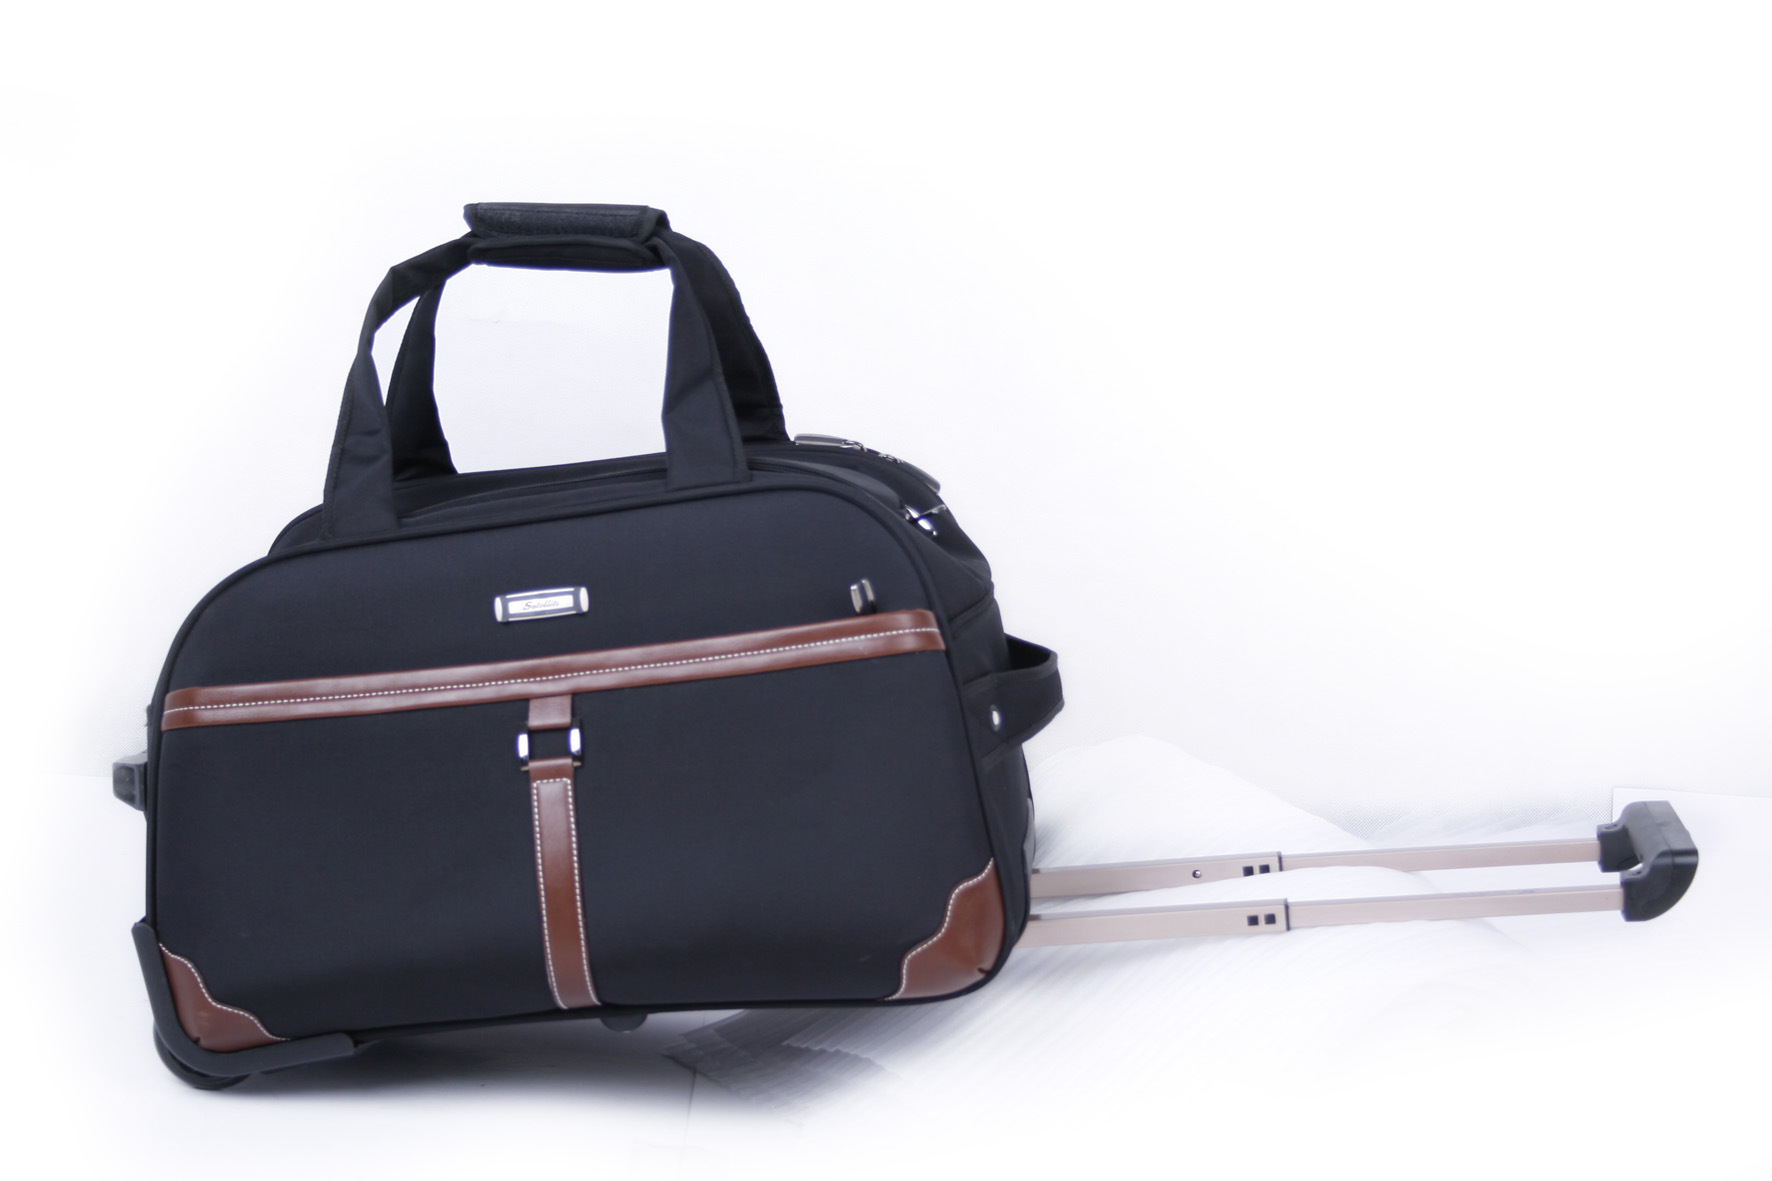 5516ea28d8d9 [Hot Item] Cheap Price Duffle Bag Promotional Trolley Luggage Bag Travel  Luggage